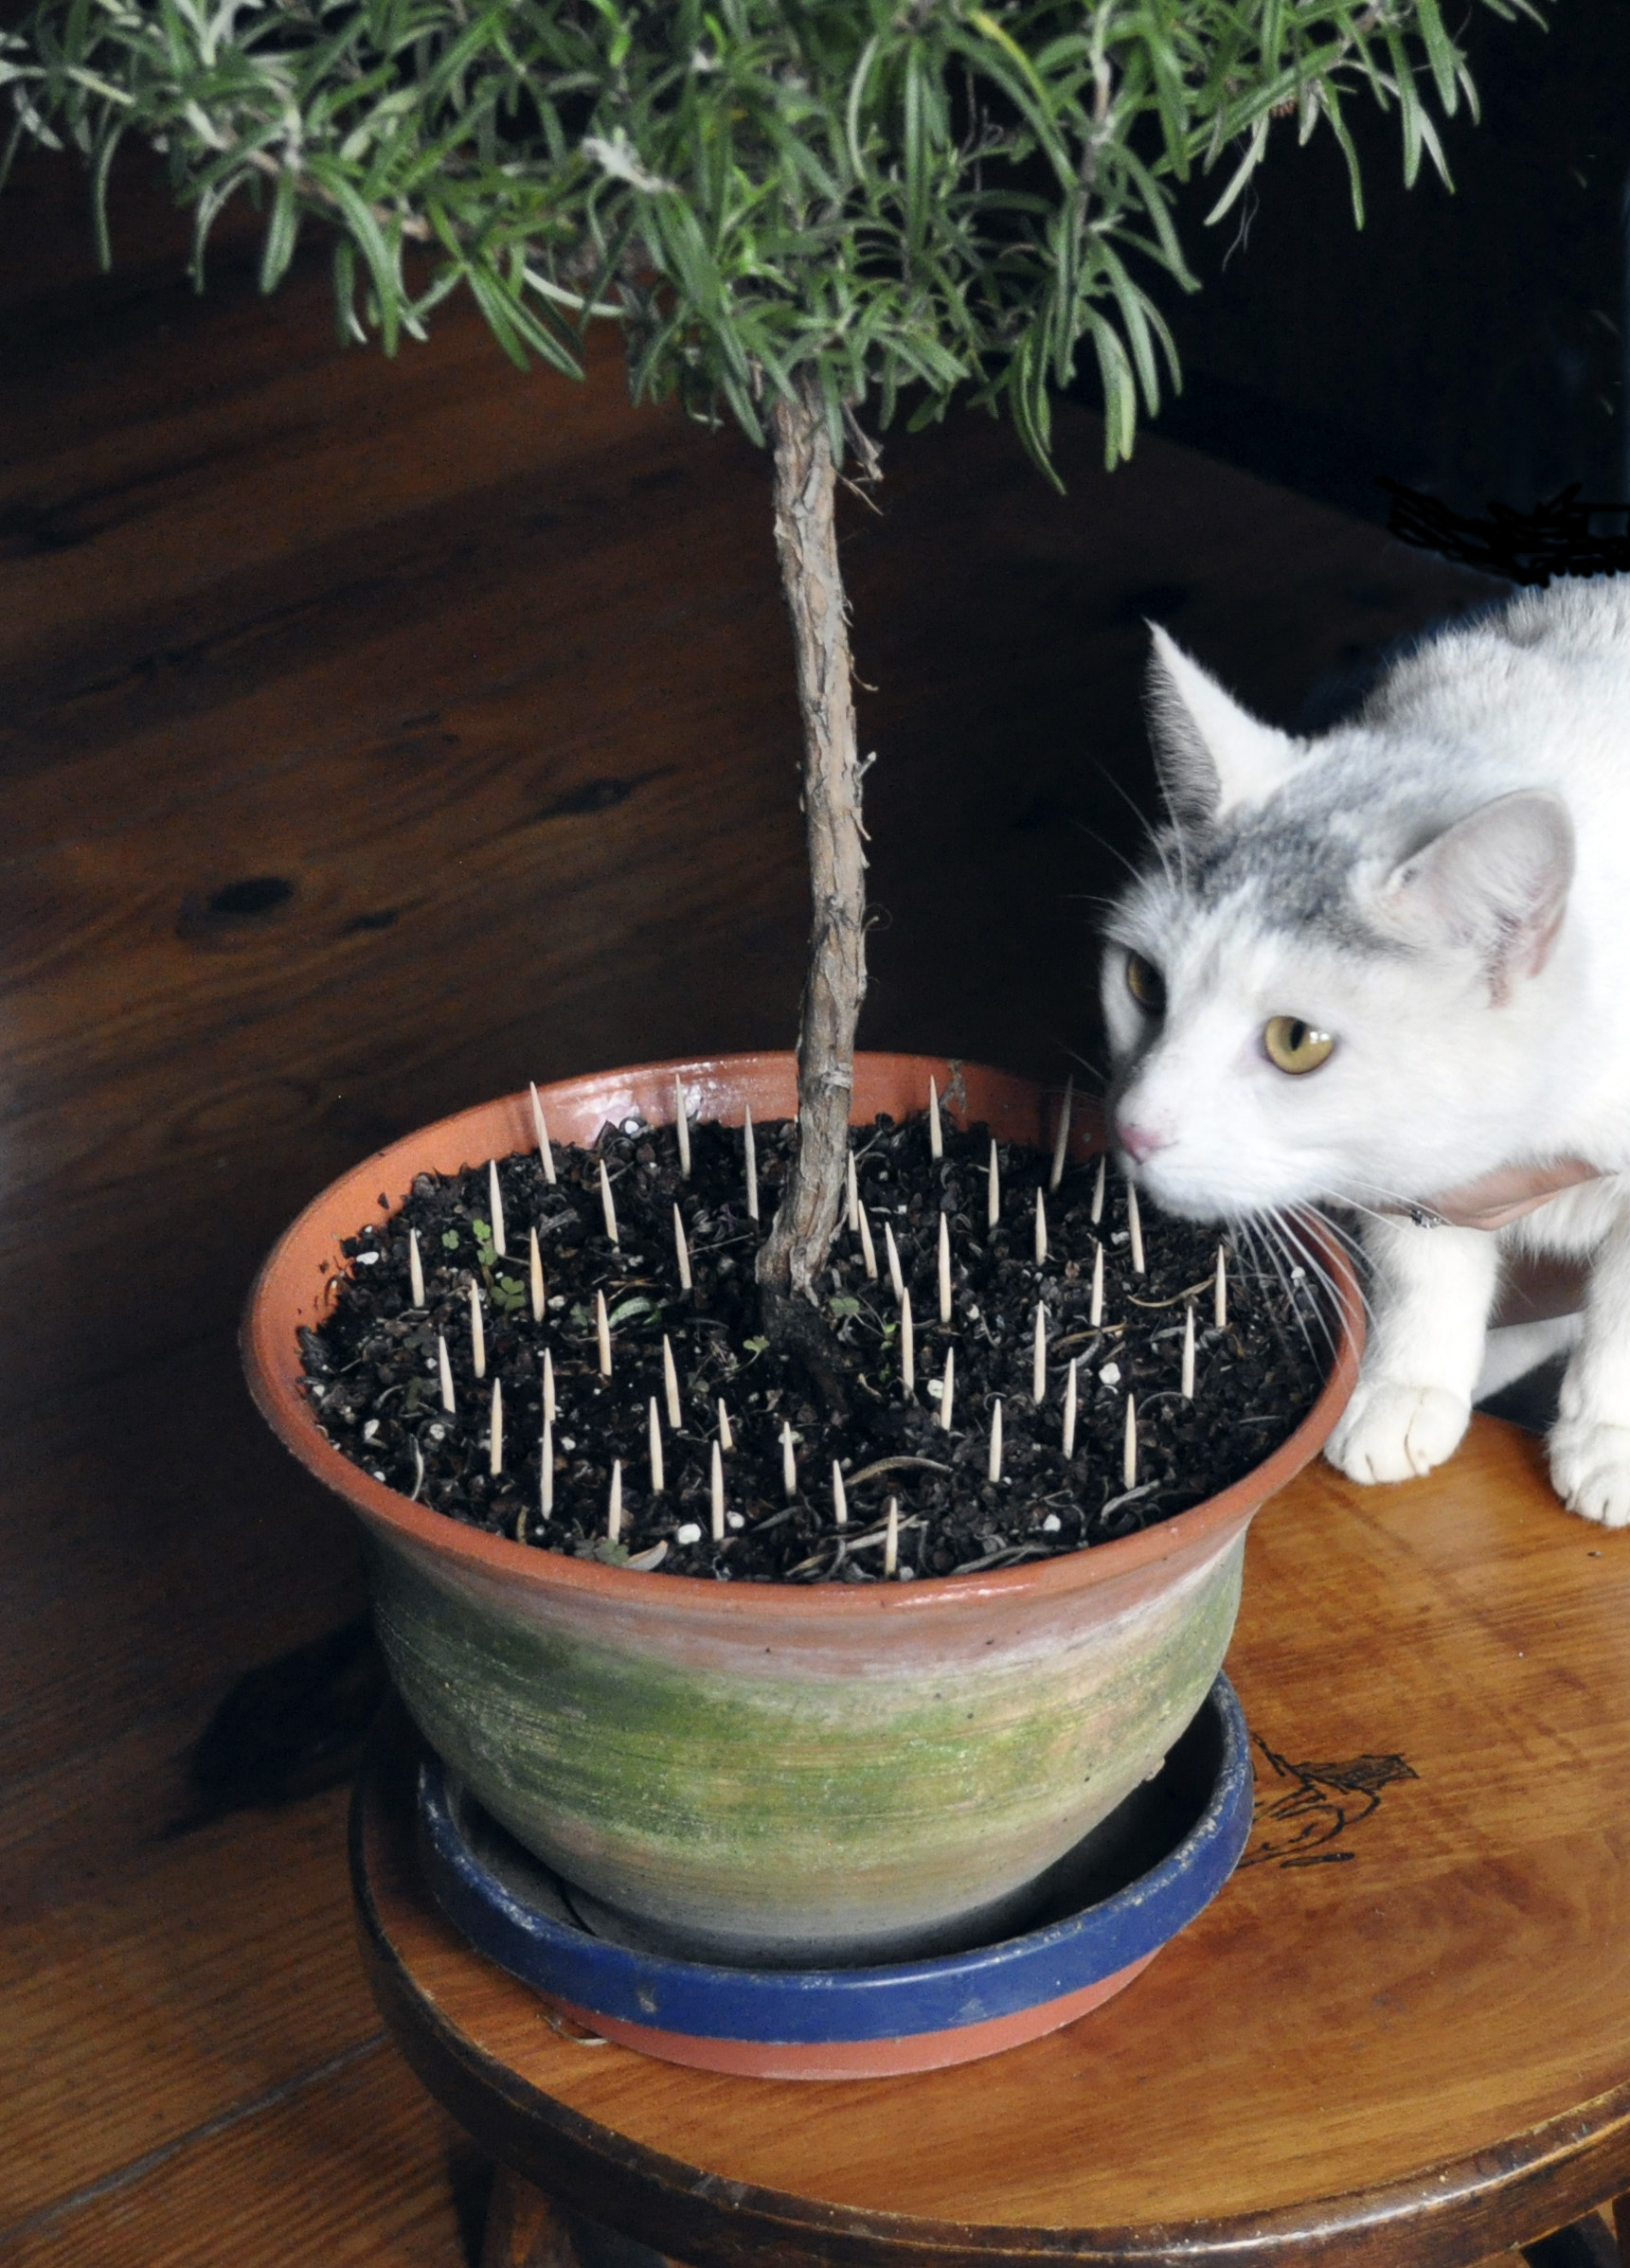 Toothpicks Placed In The Potting Soil Can Help Keep Cats Away From The Soil  In Potted